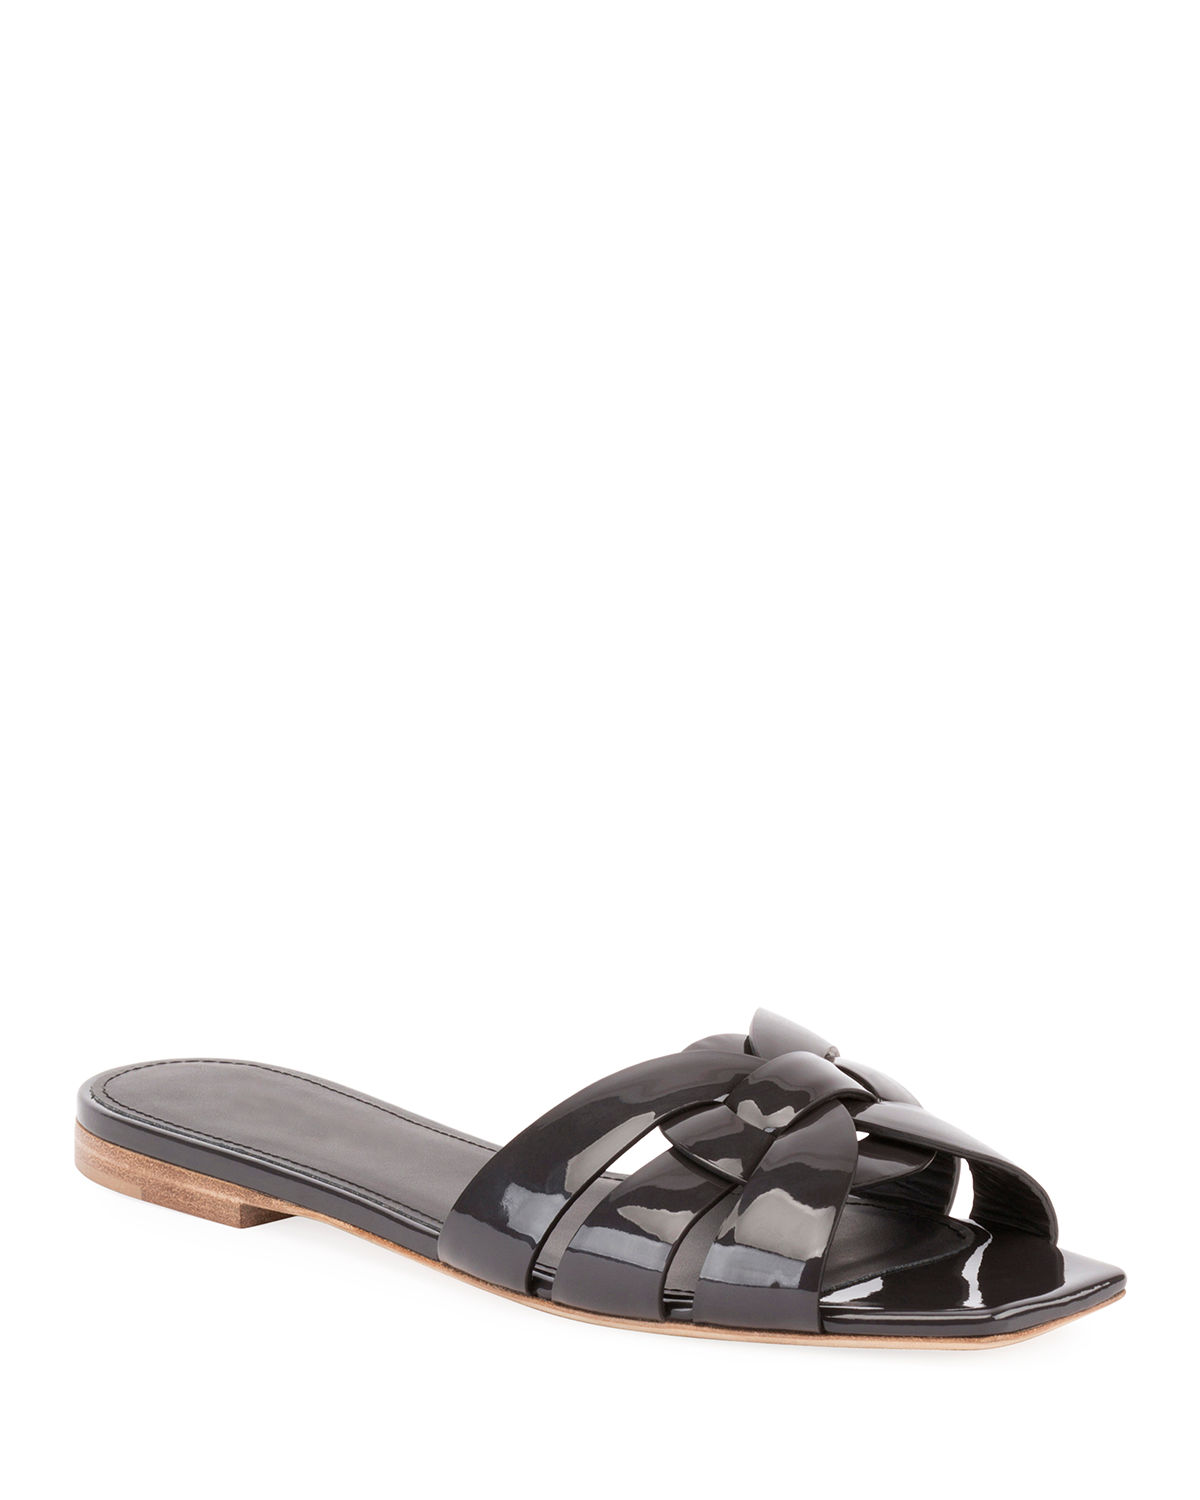 d330f991bc Saint Laurent Tribute Patent Leather Flat Slide Sandals | Neiman Marcus